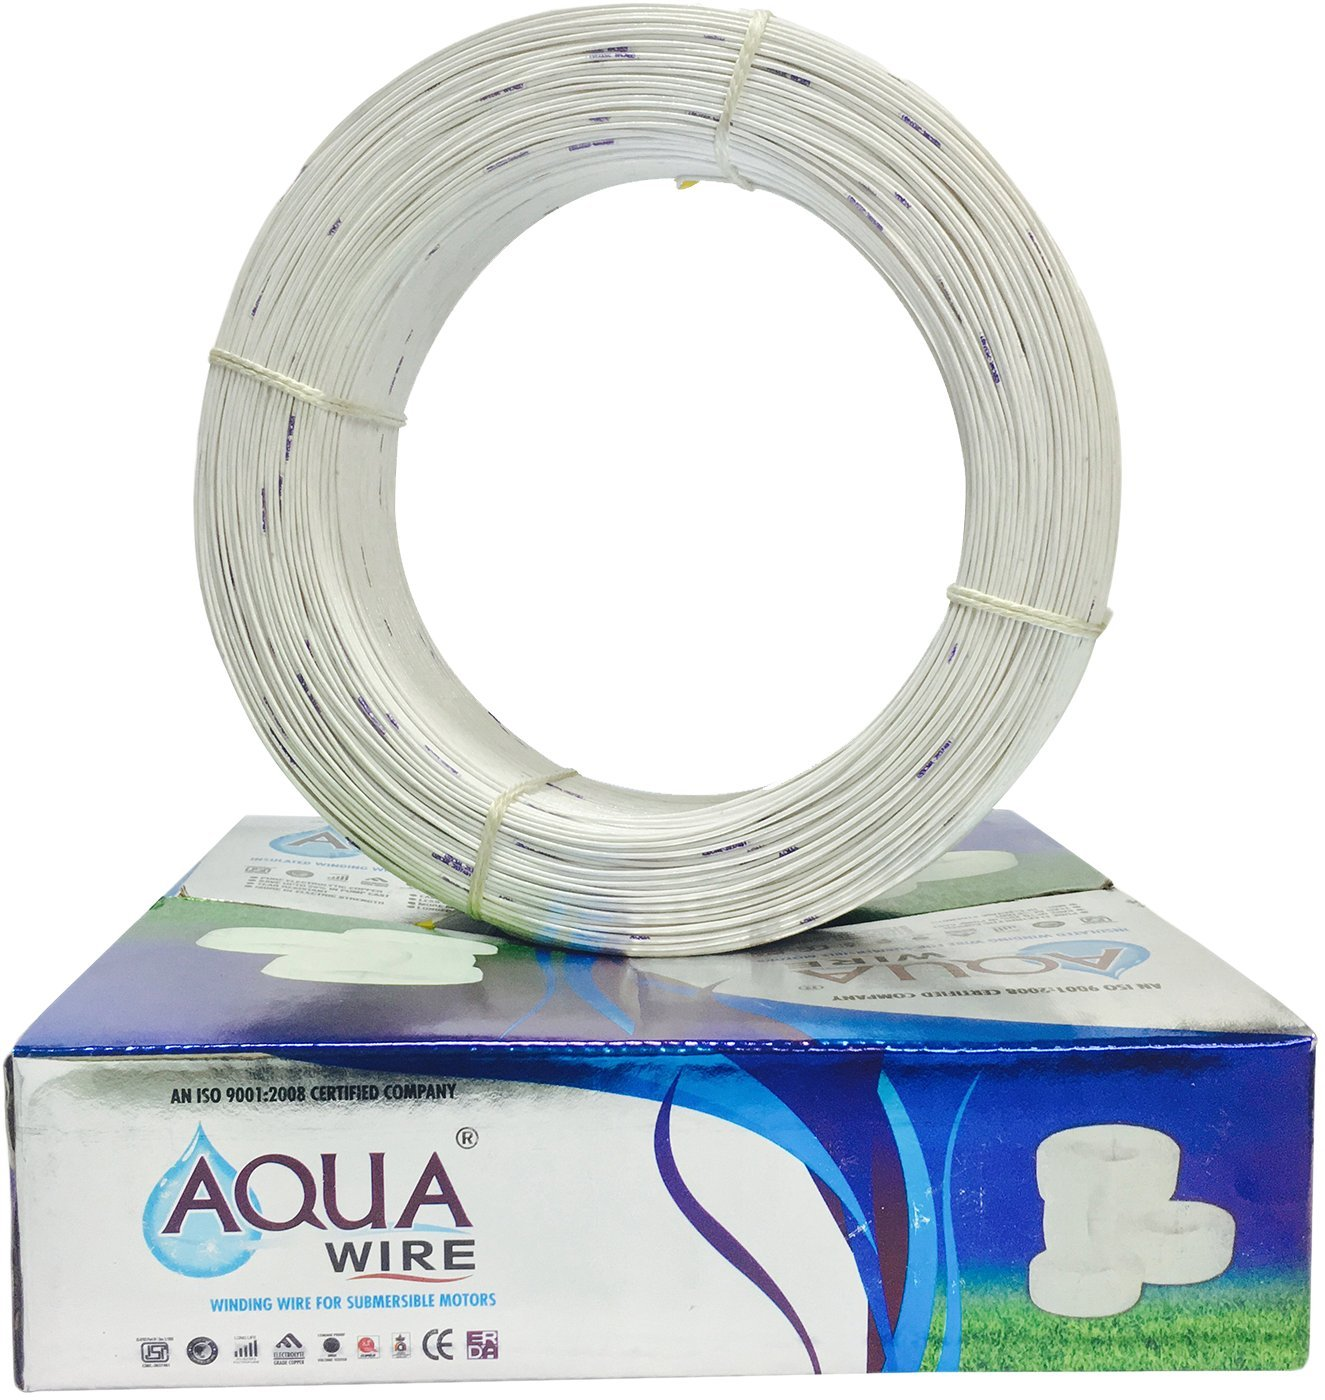 Submersible Copper Winding Wire, PVC Winding Wire for Submersible ...